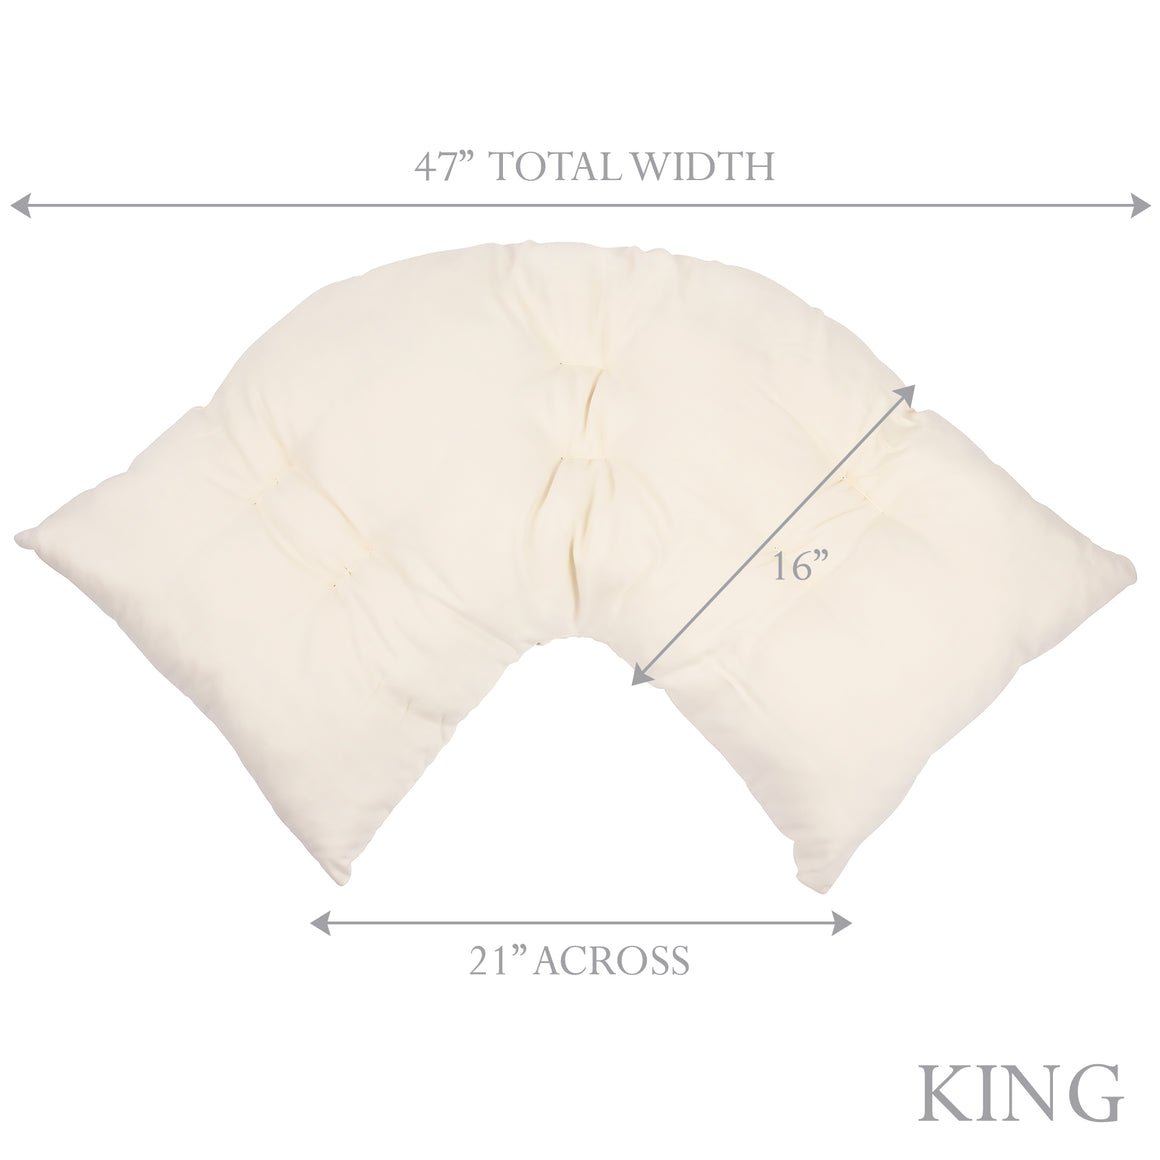 Serenity: King - The Right Pillow